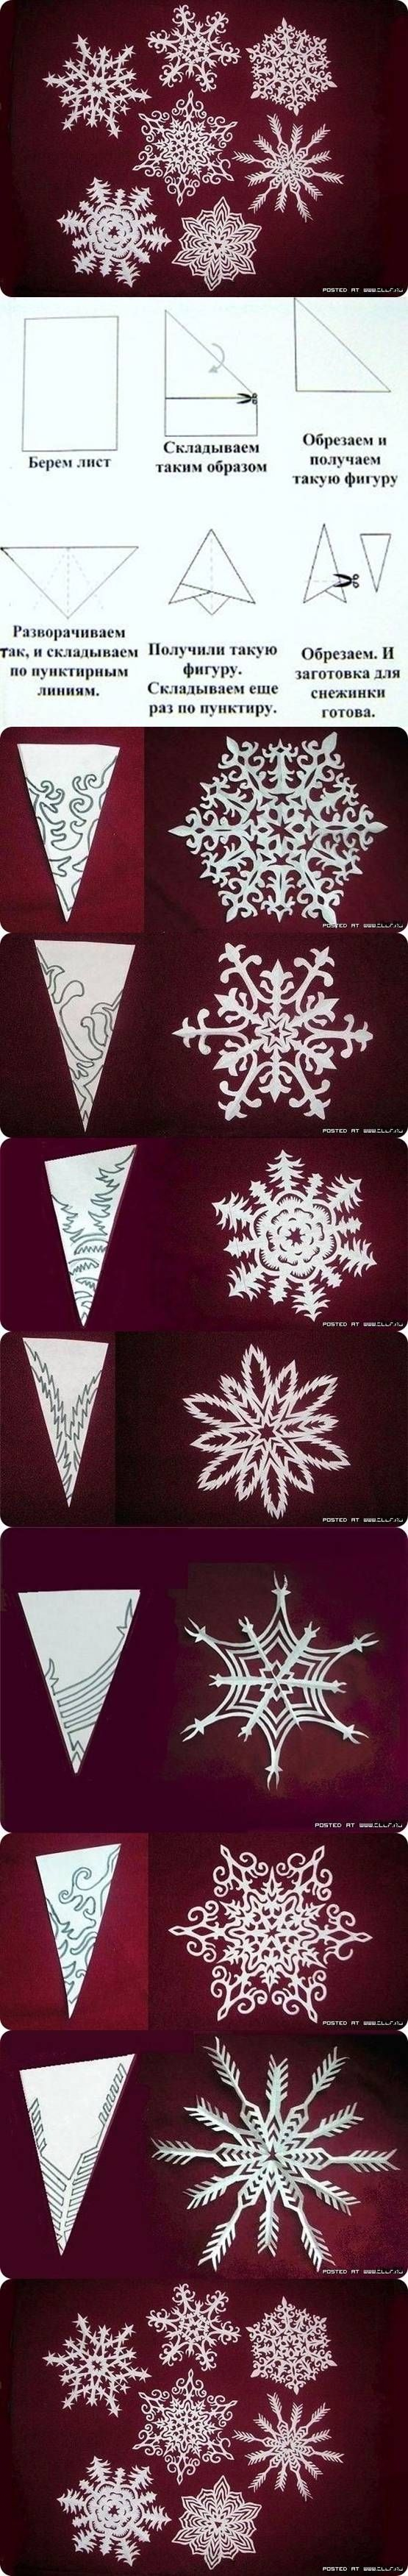 DIY Snowflakes from Paper